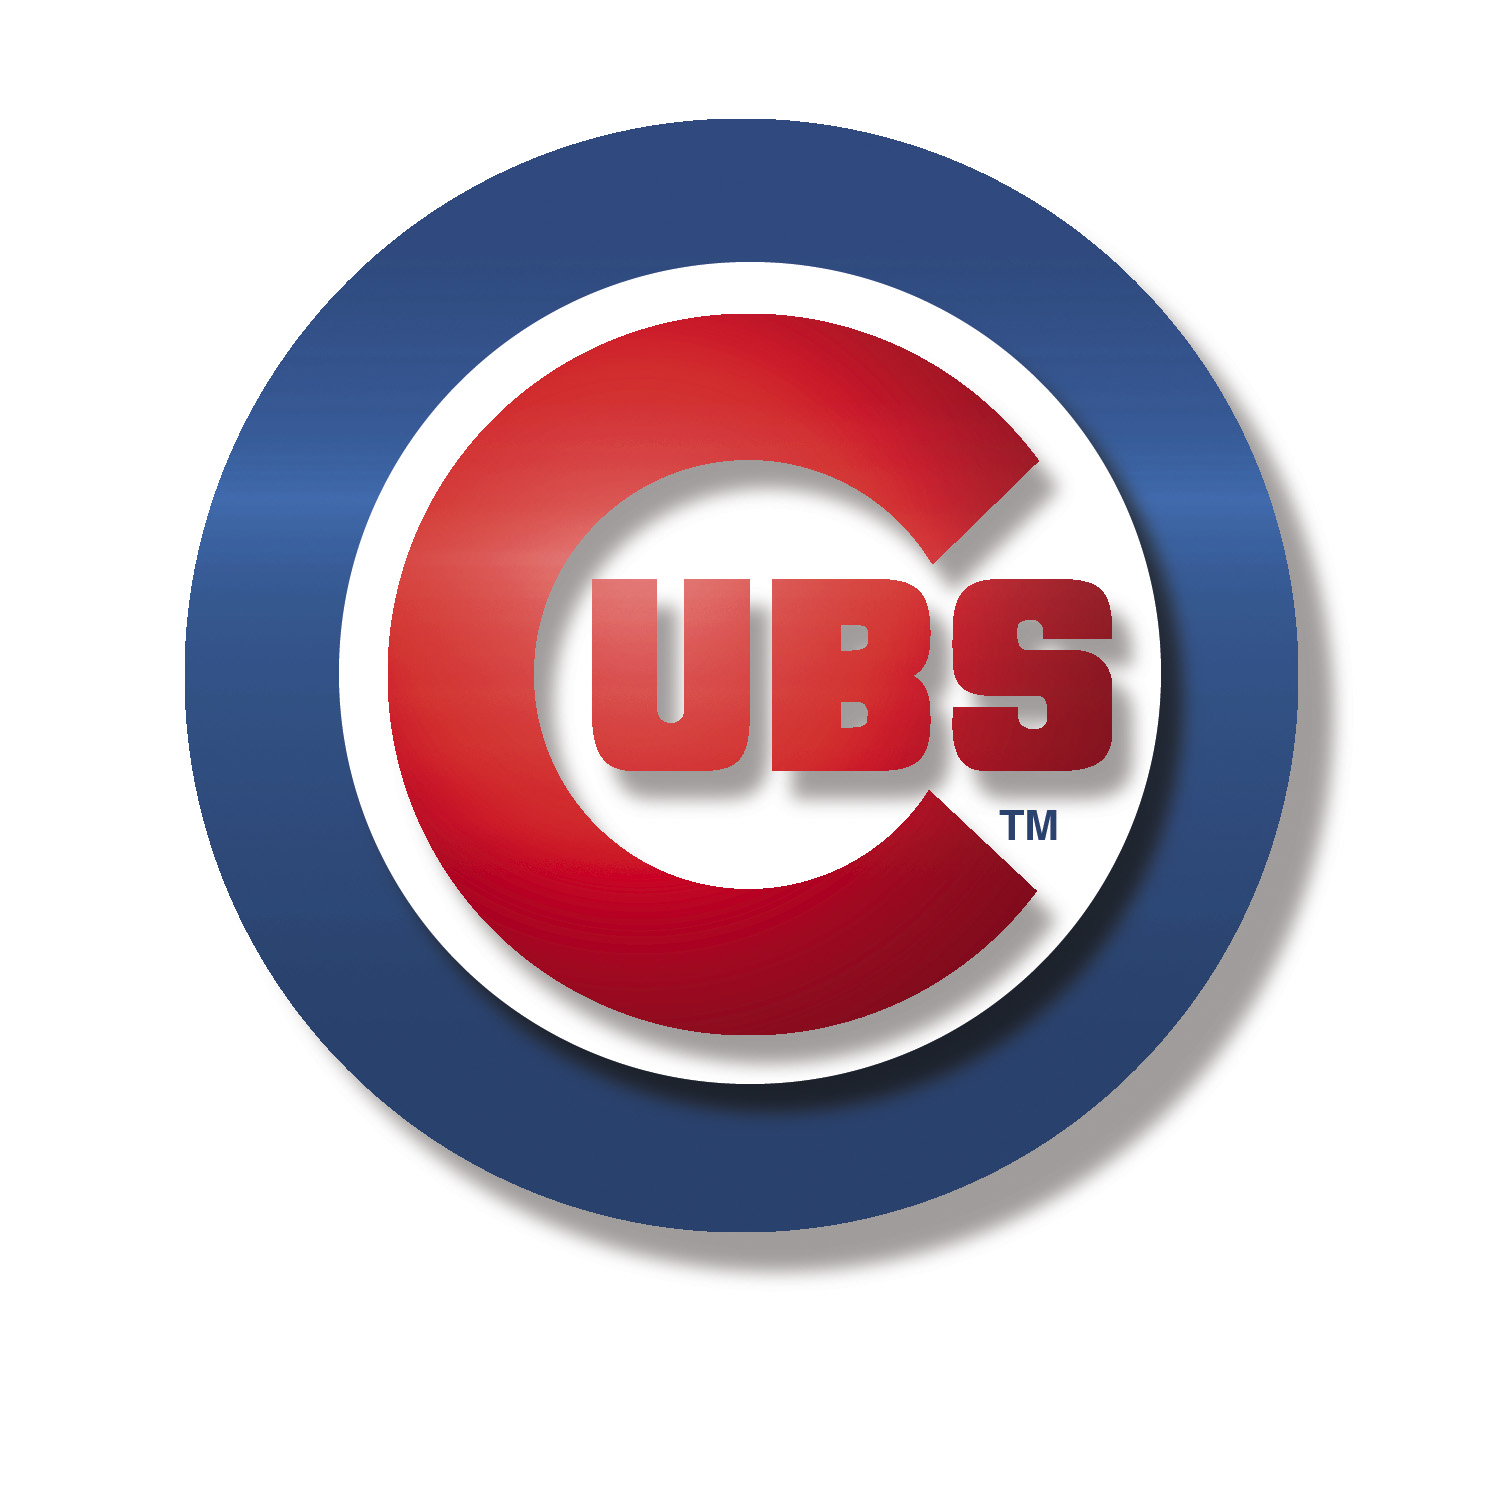 Cubs Logo Pictures 29